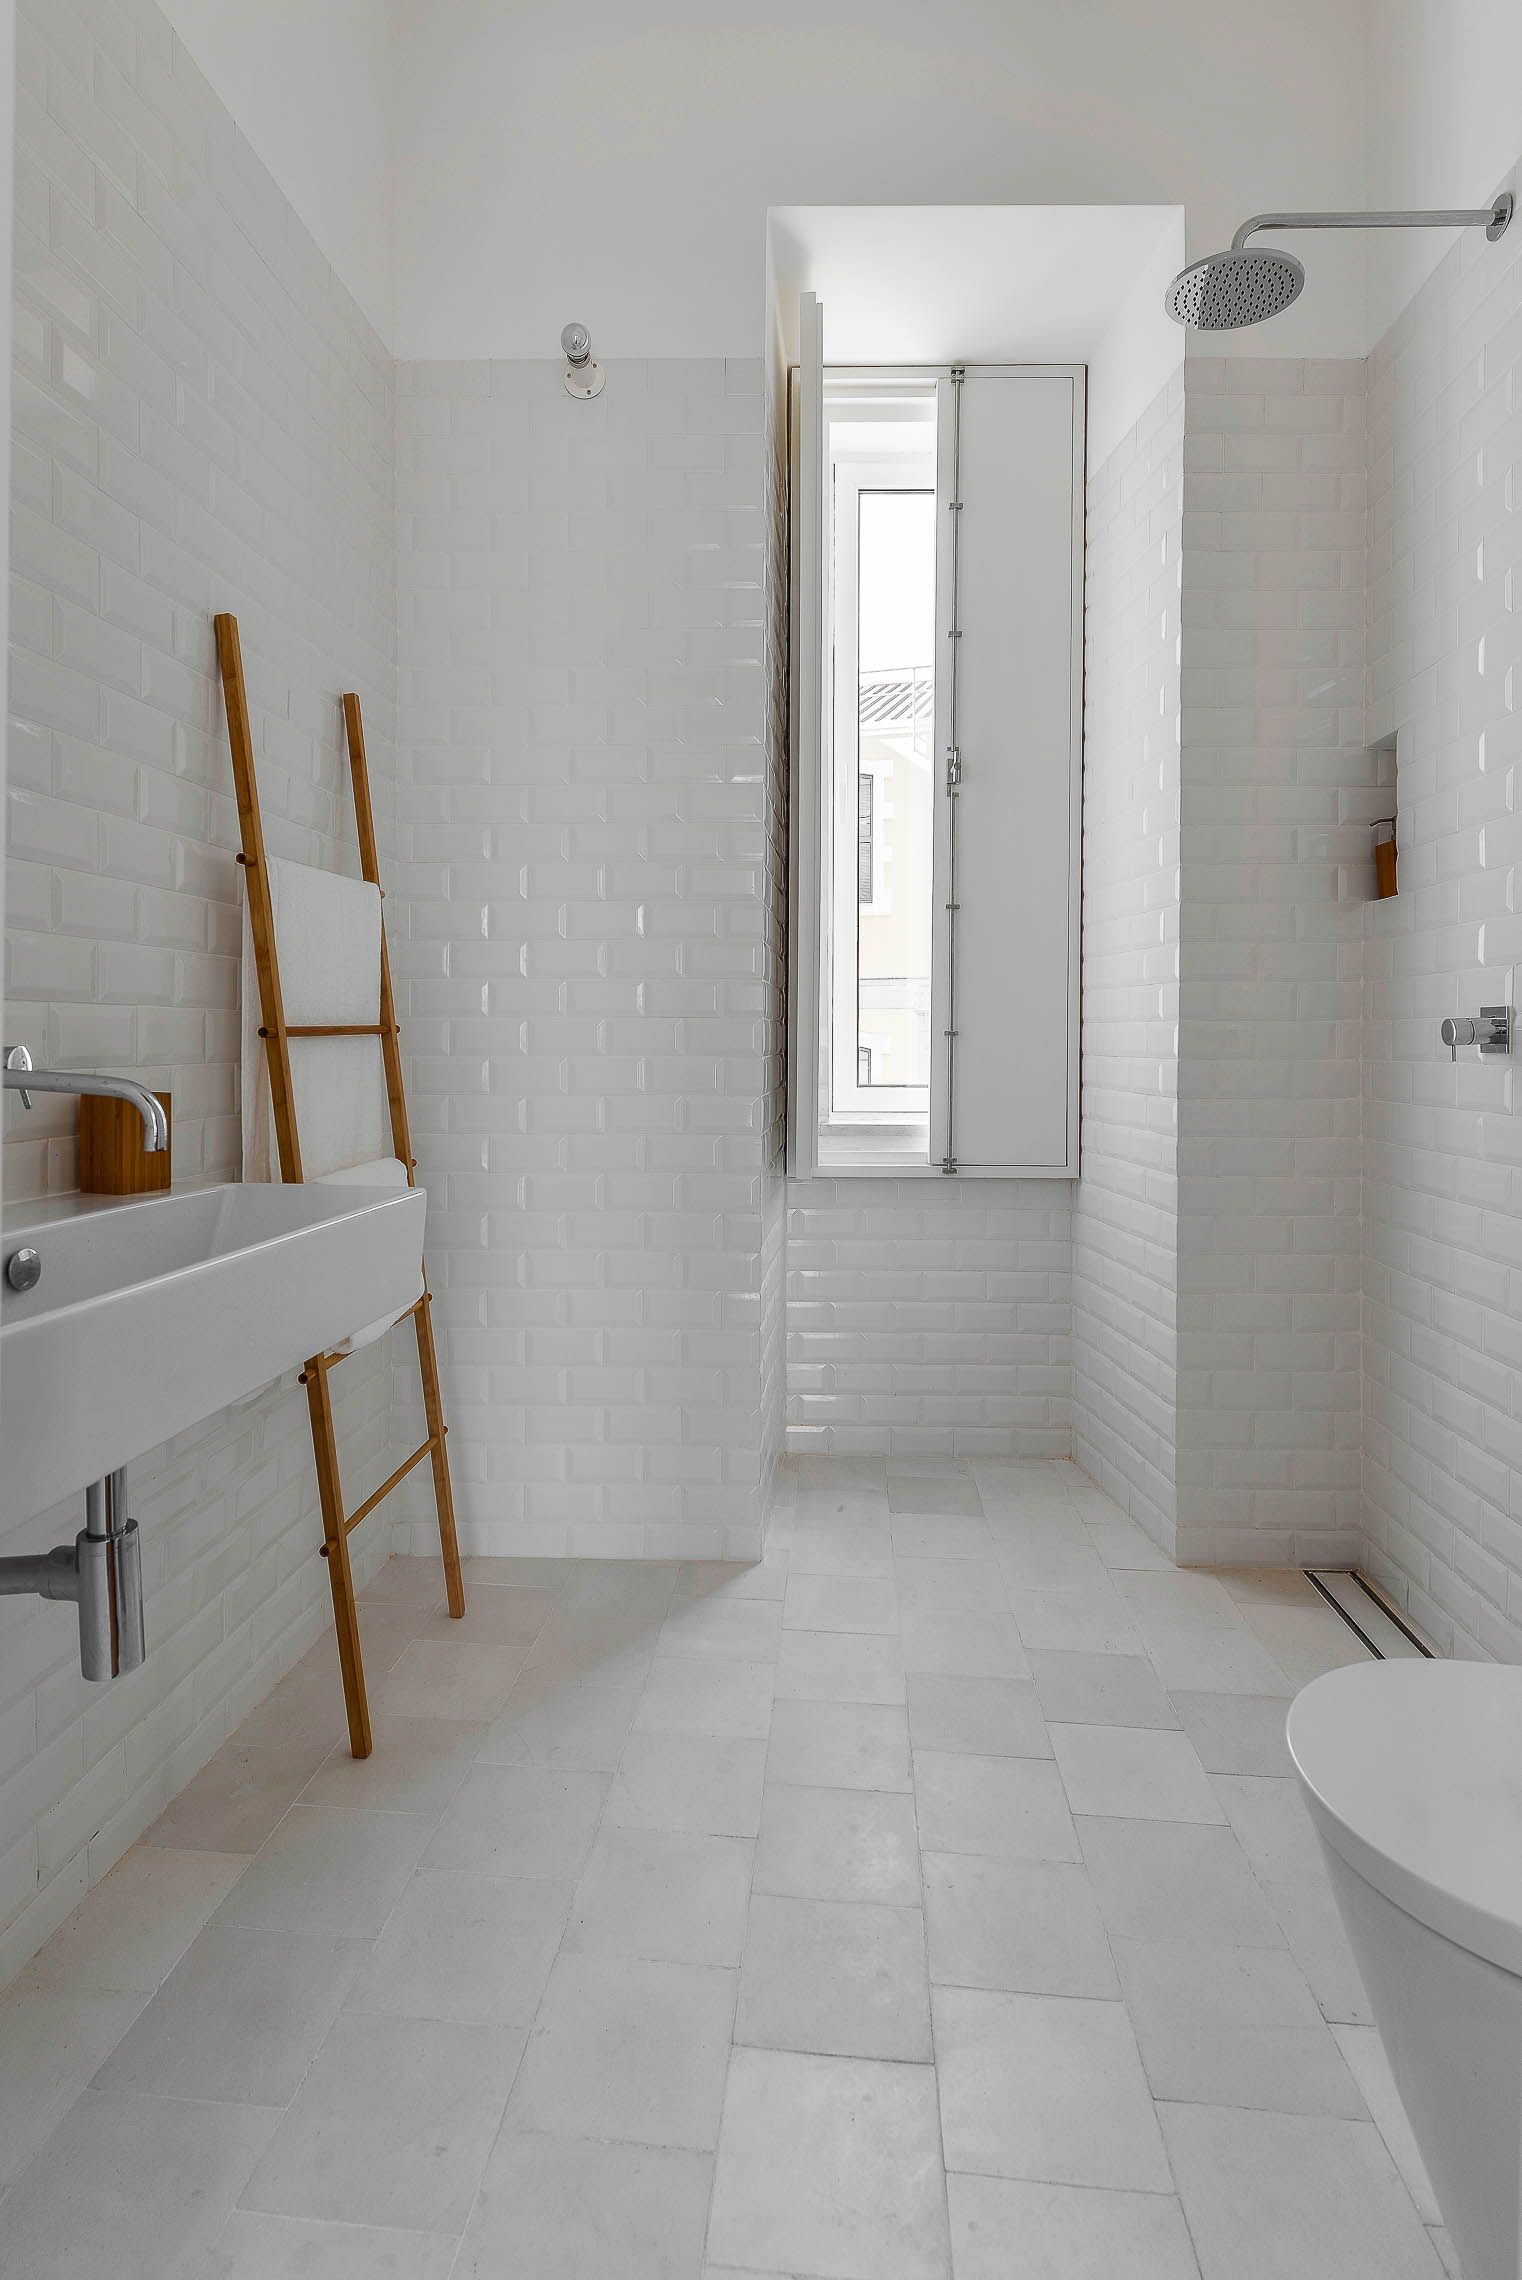 Photo of Articles about 5 white subway tile ideas kitchen or bathroom on Dwell.com